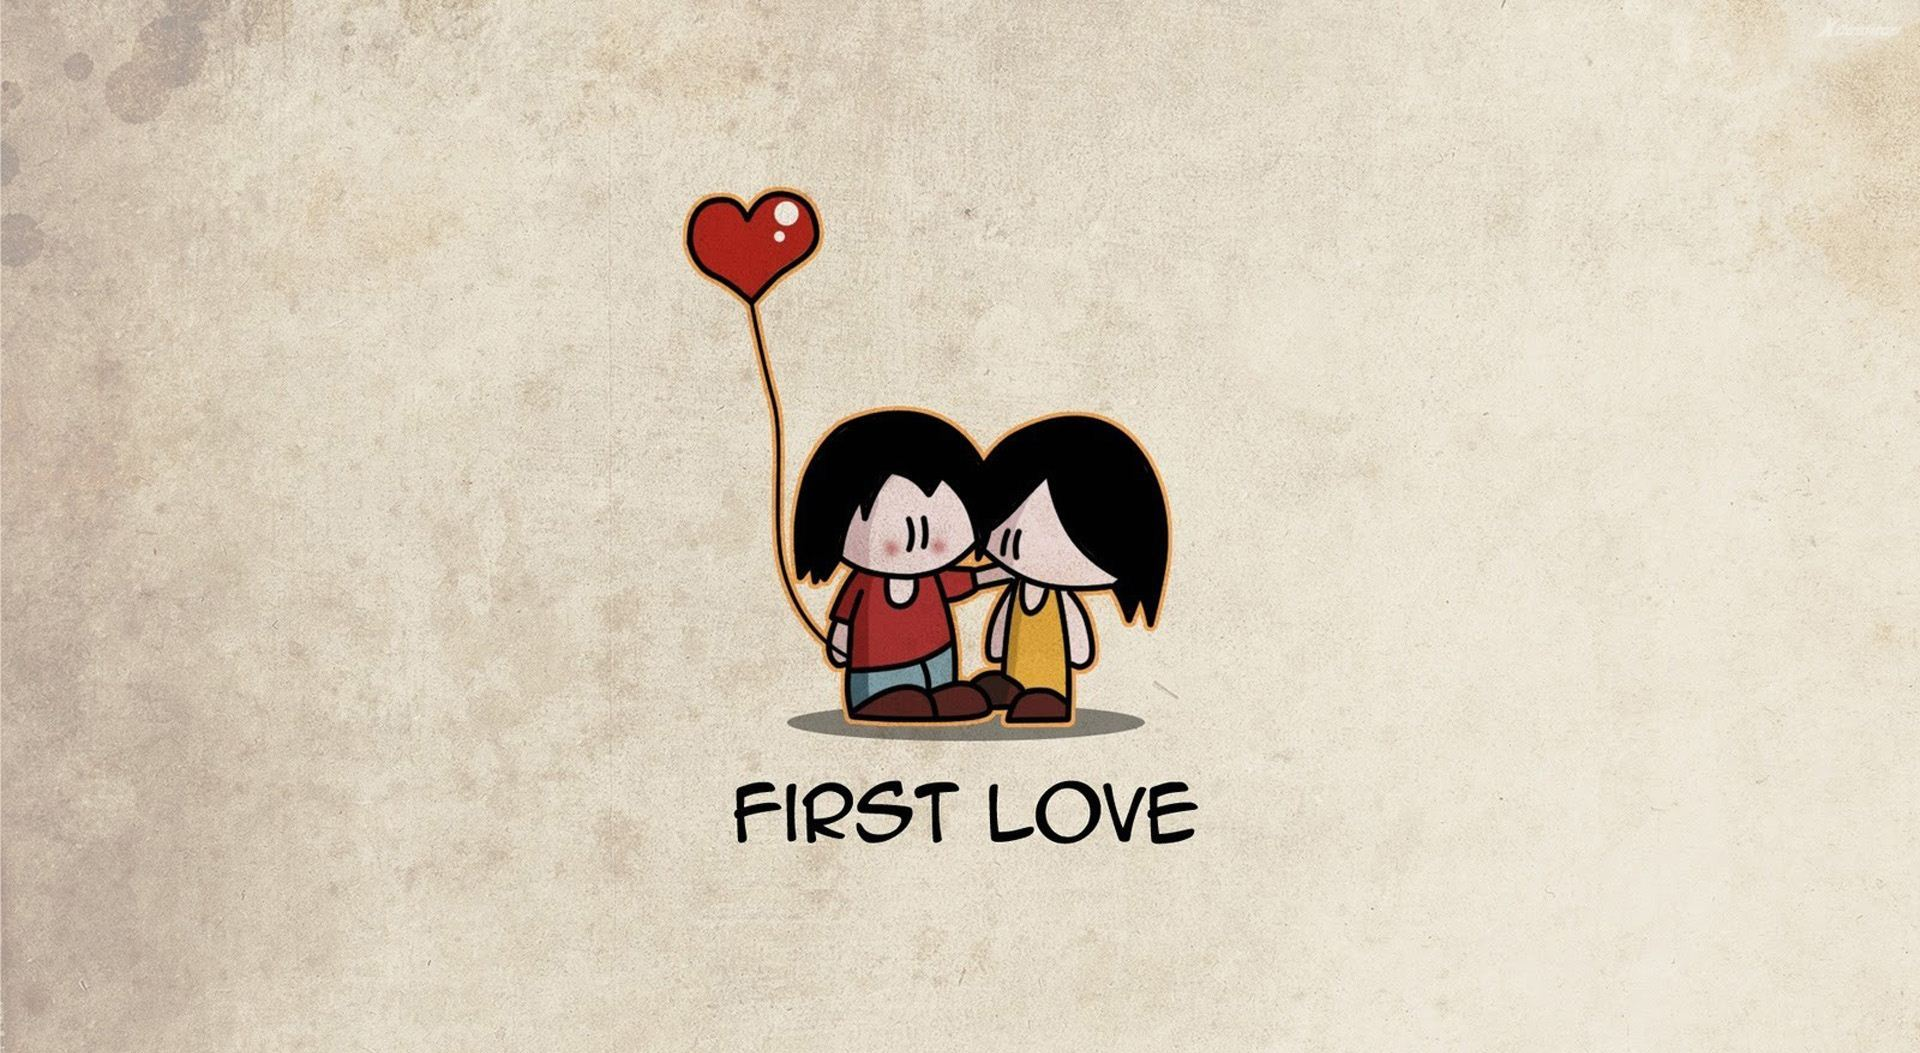 first love or true